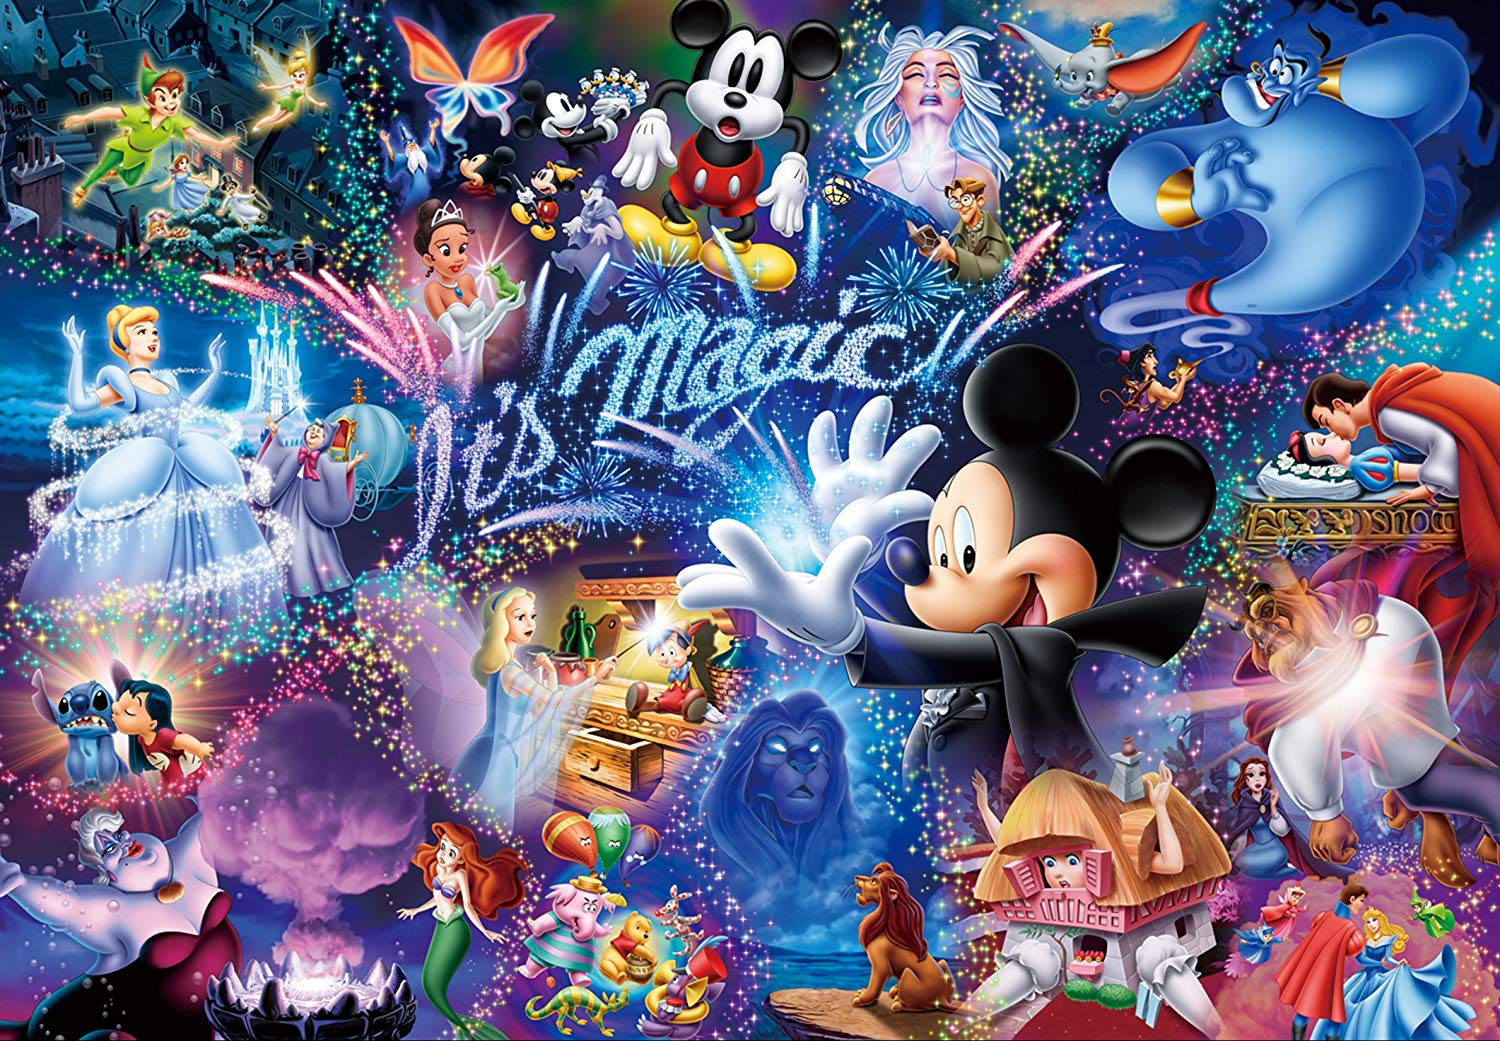 Magic | Disney Wiki | FANDOM powered by Wikia